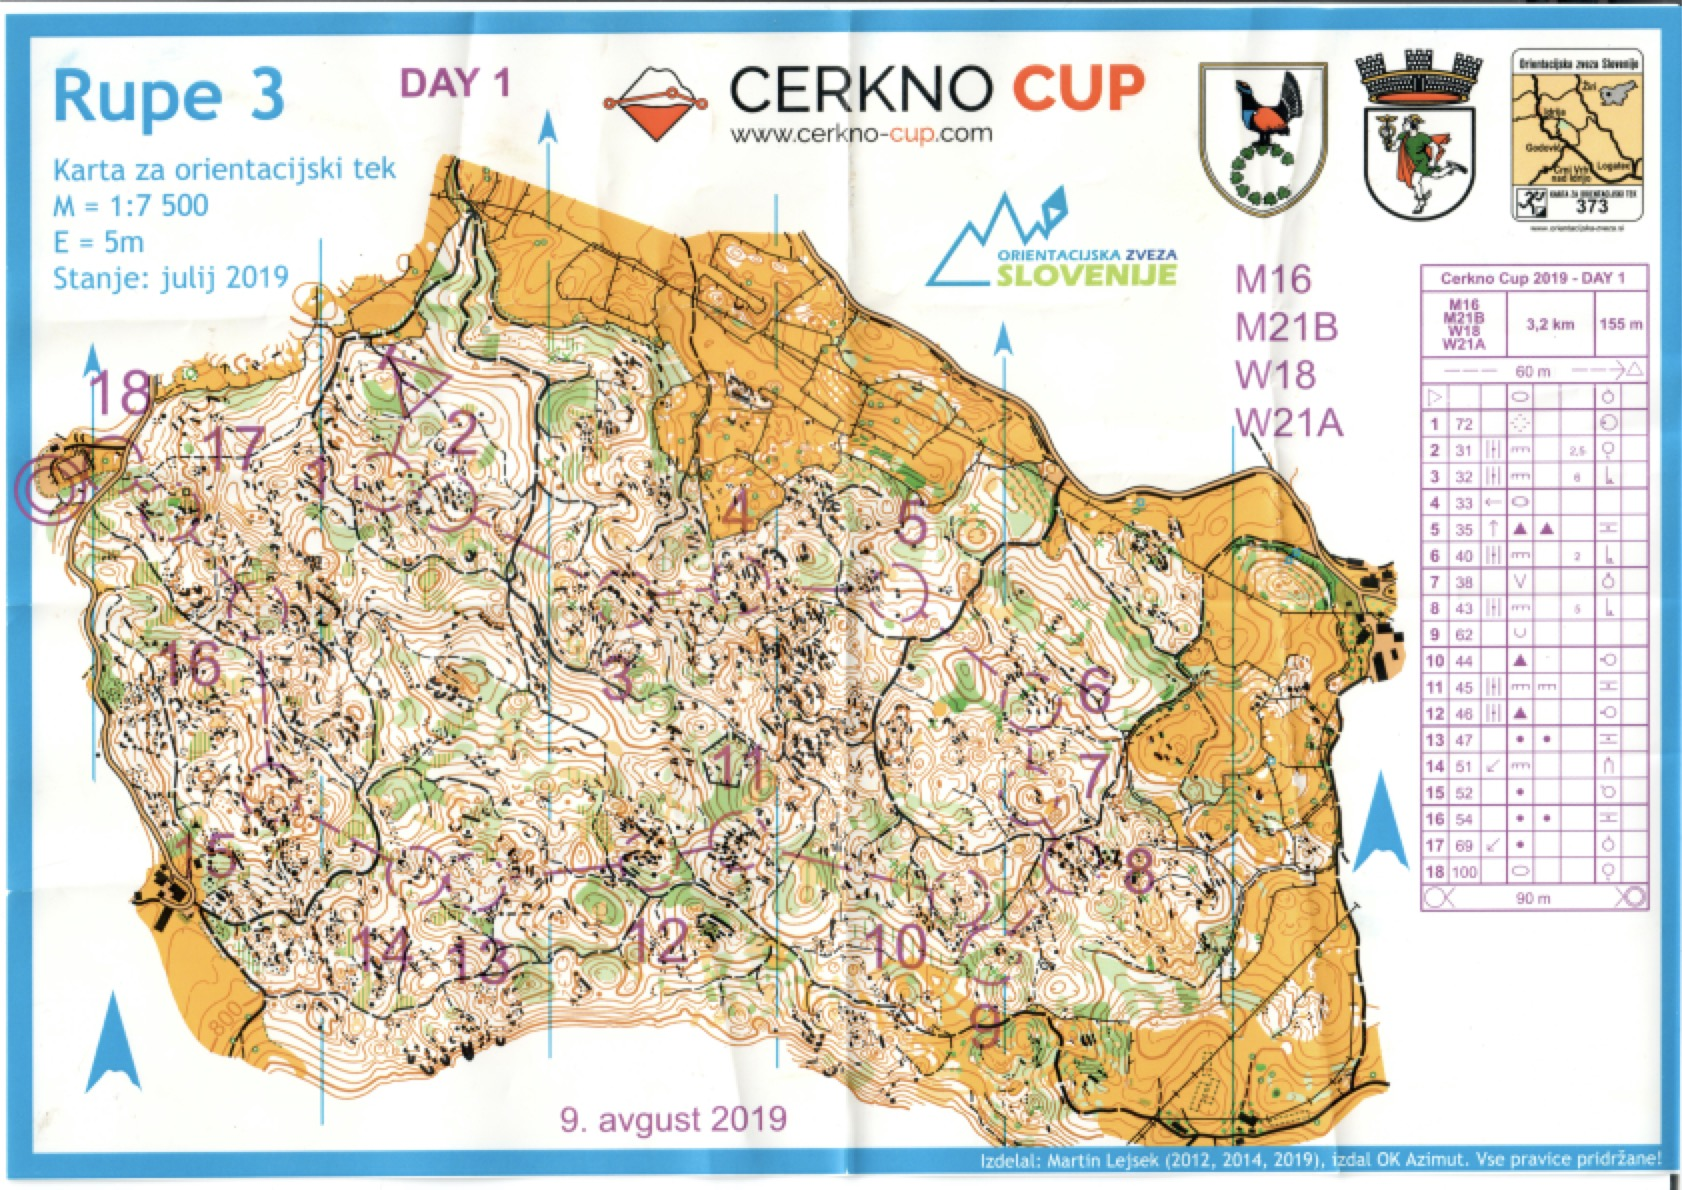 Cerkno Cup (2019) - Day 1 (09/08/2019)